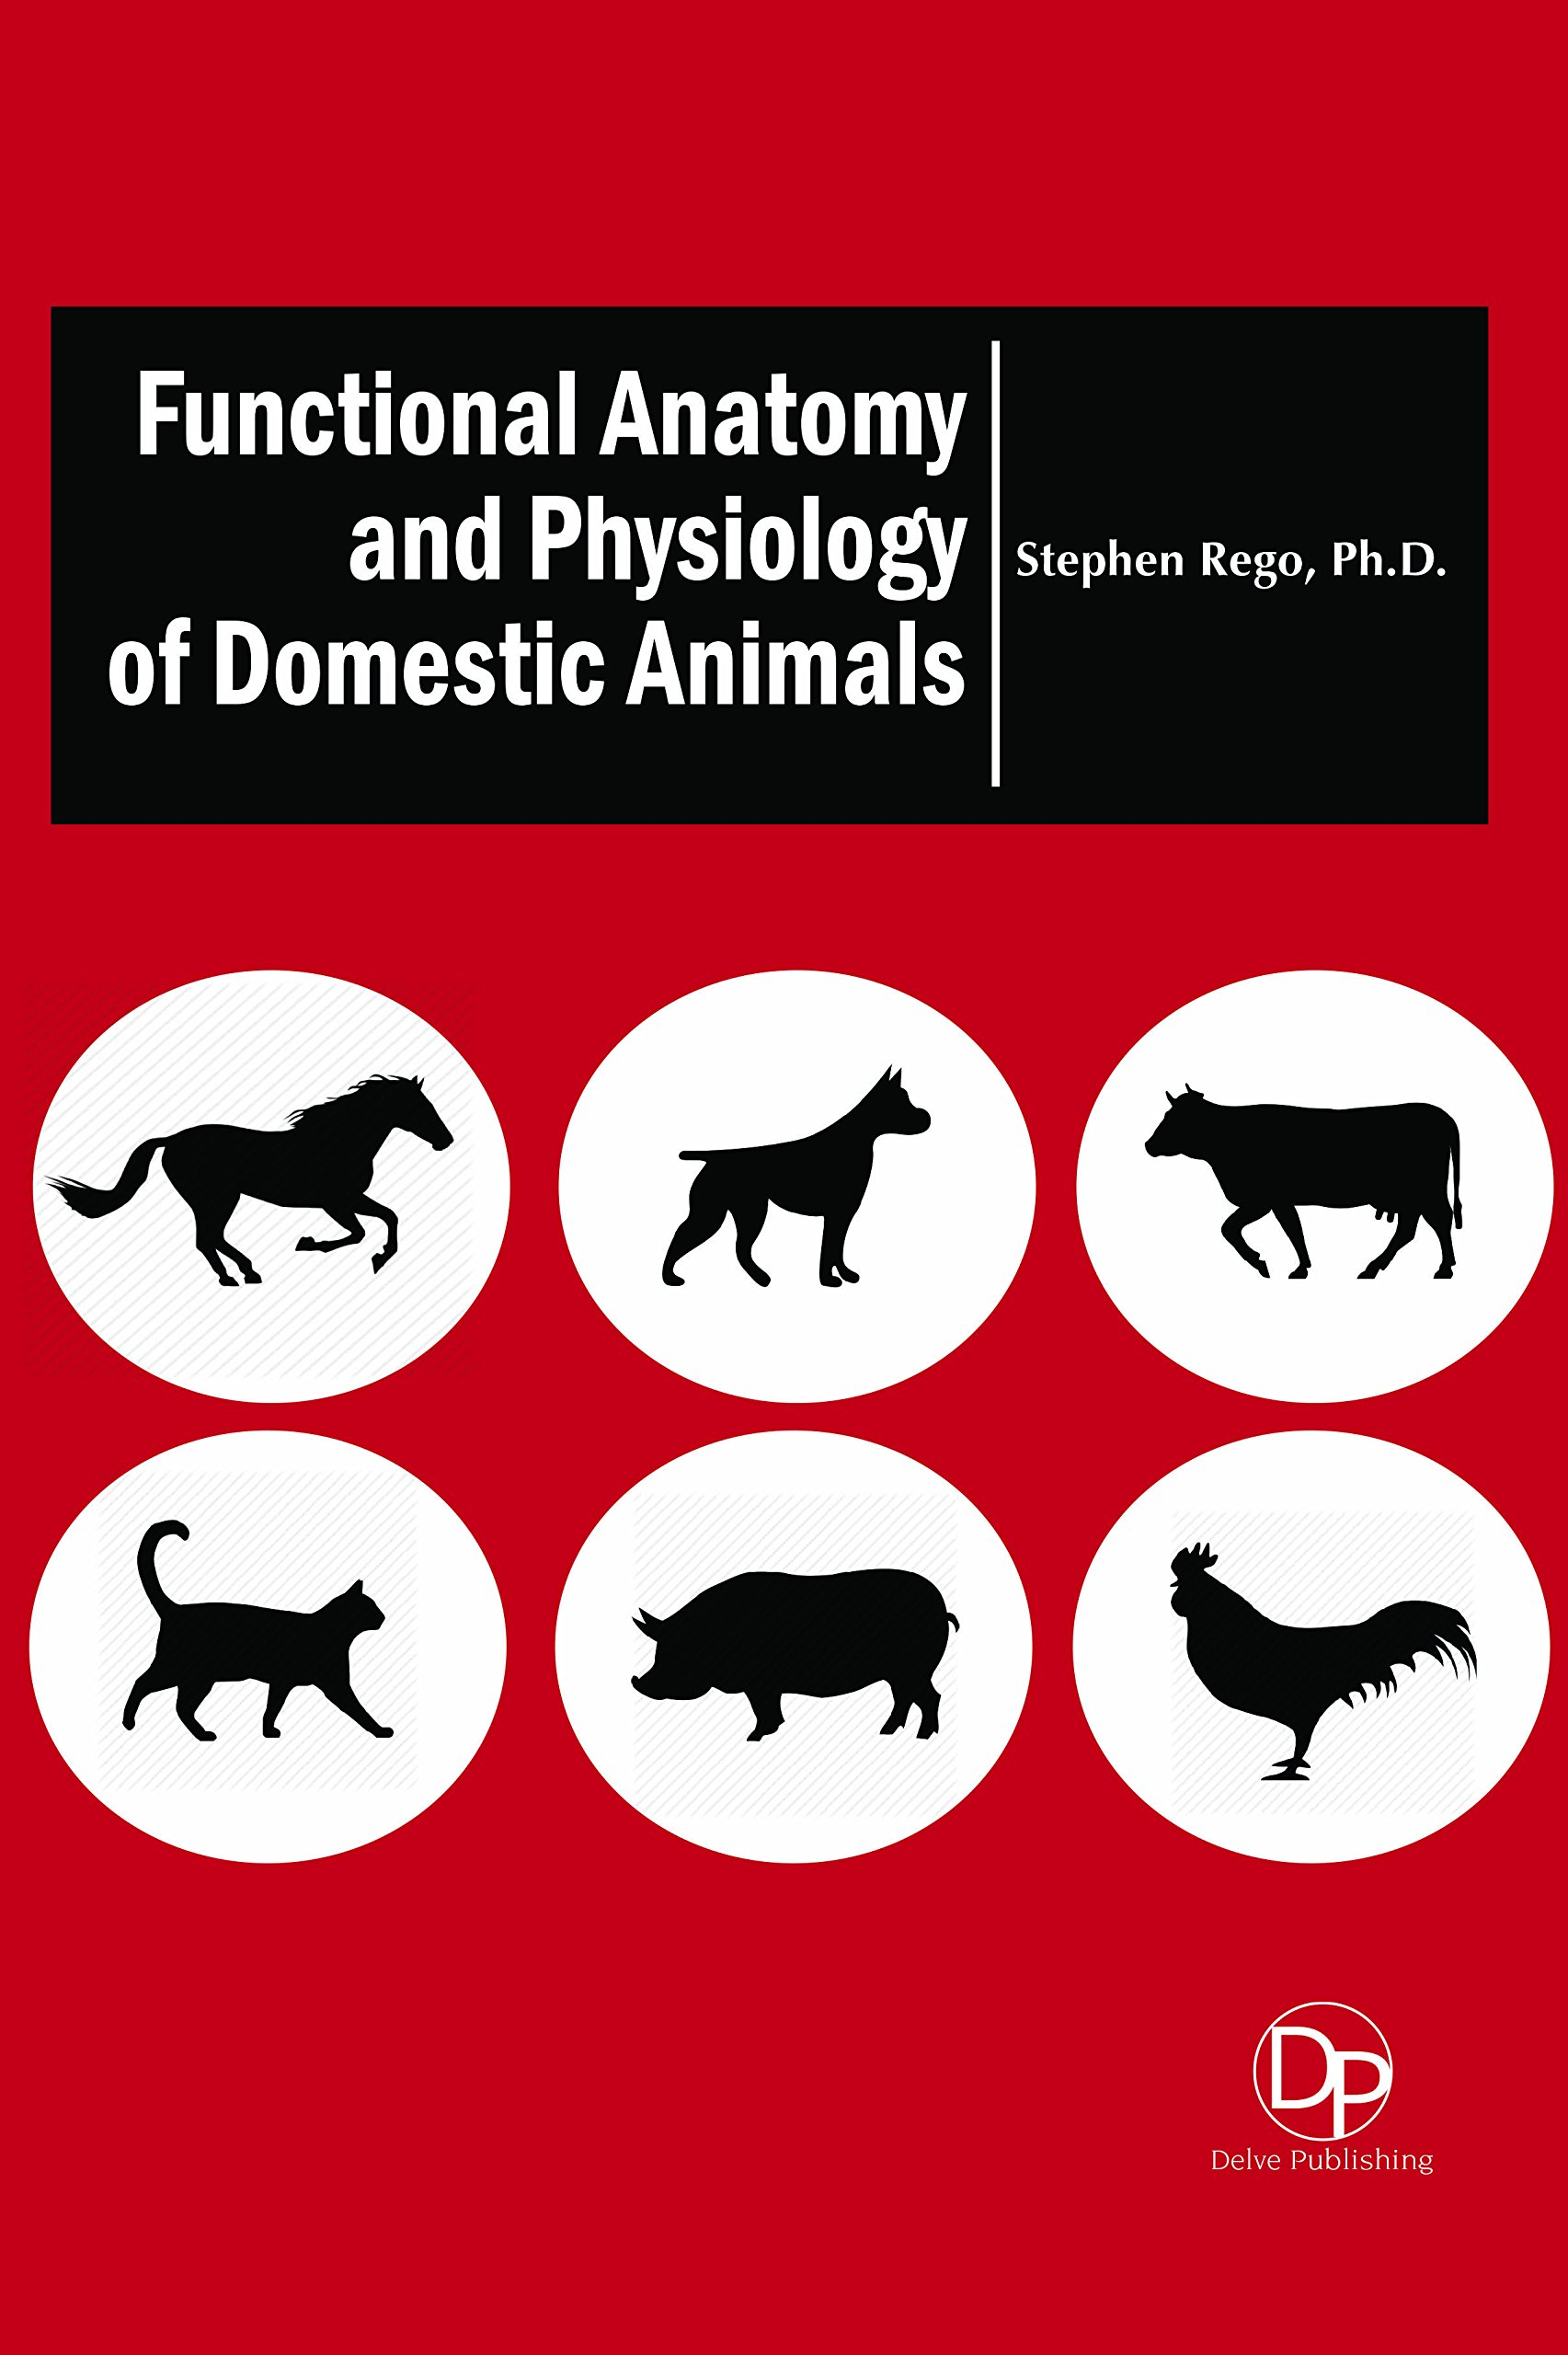 Moderno Anatomy And Physiology Of Domestic Animals Imágenes ...